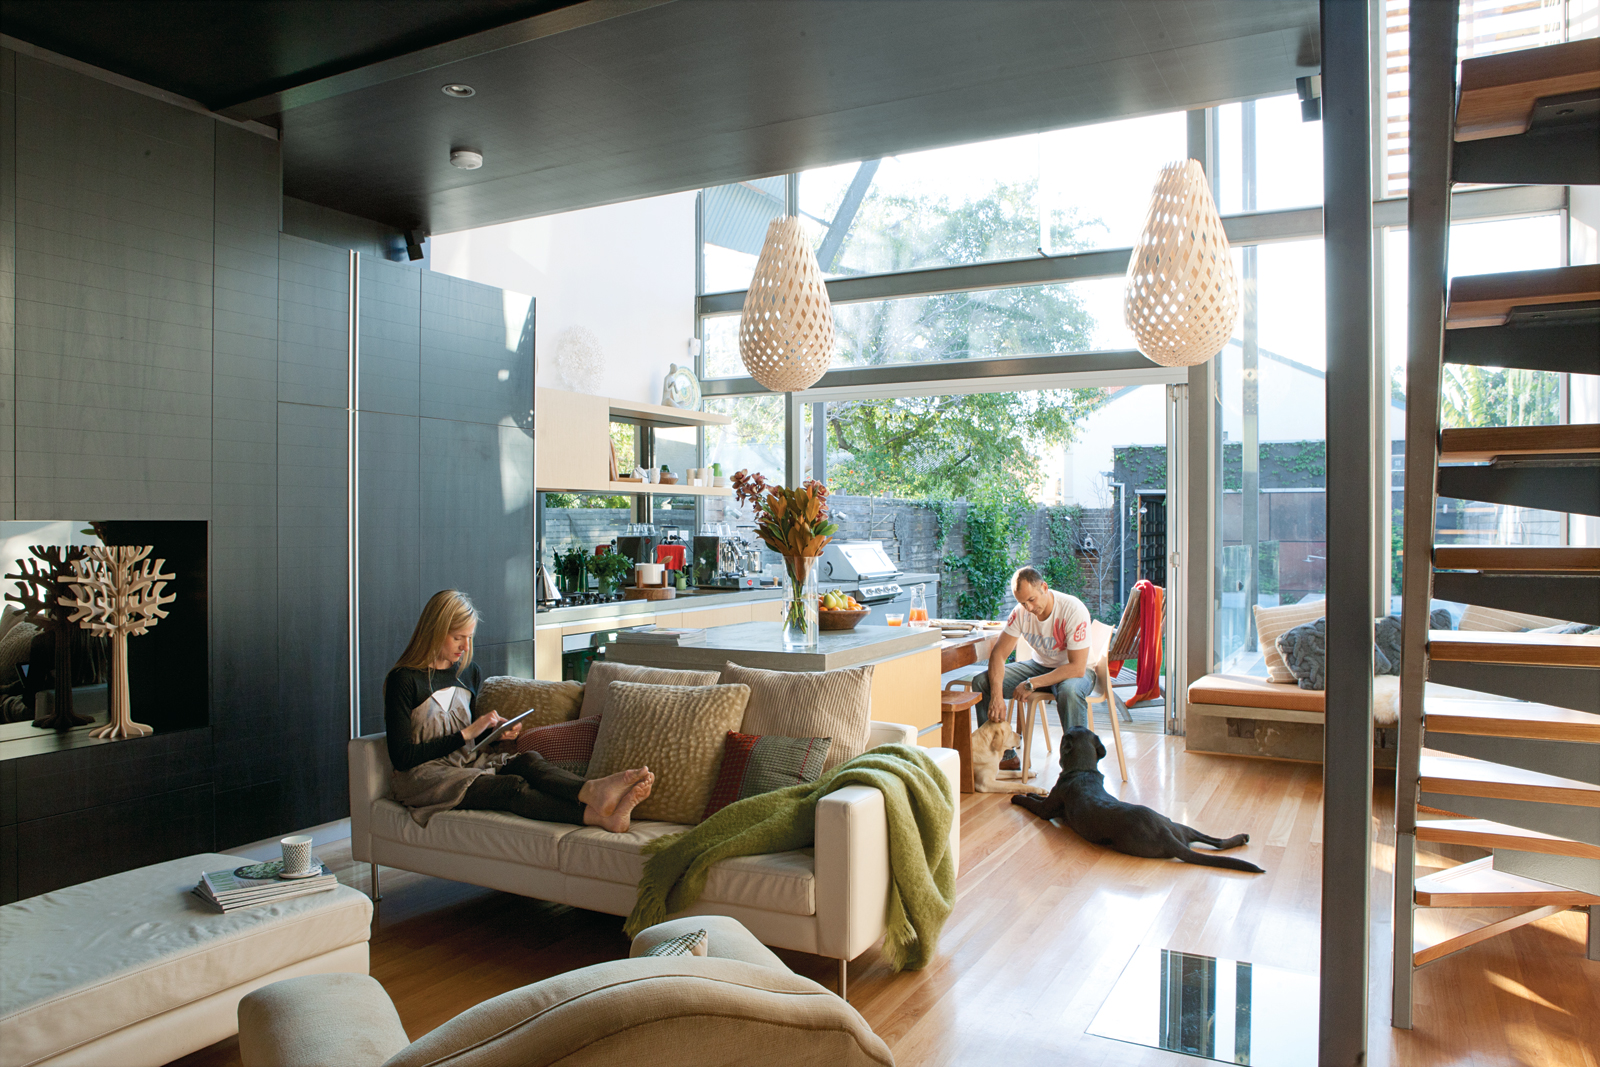 open dining and living room area with Koura pendant lamps